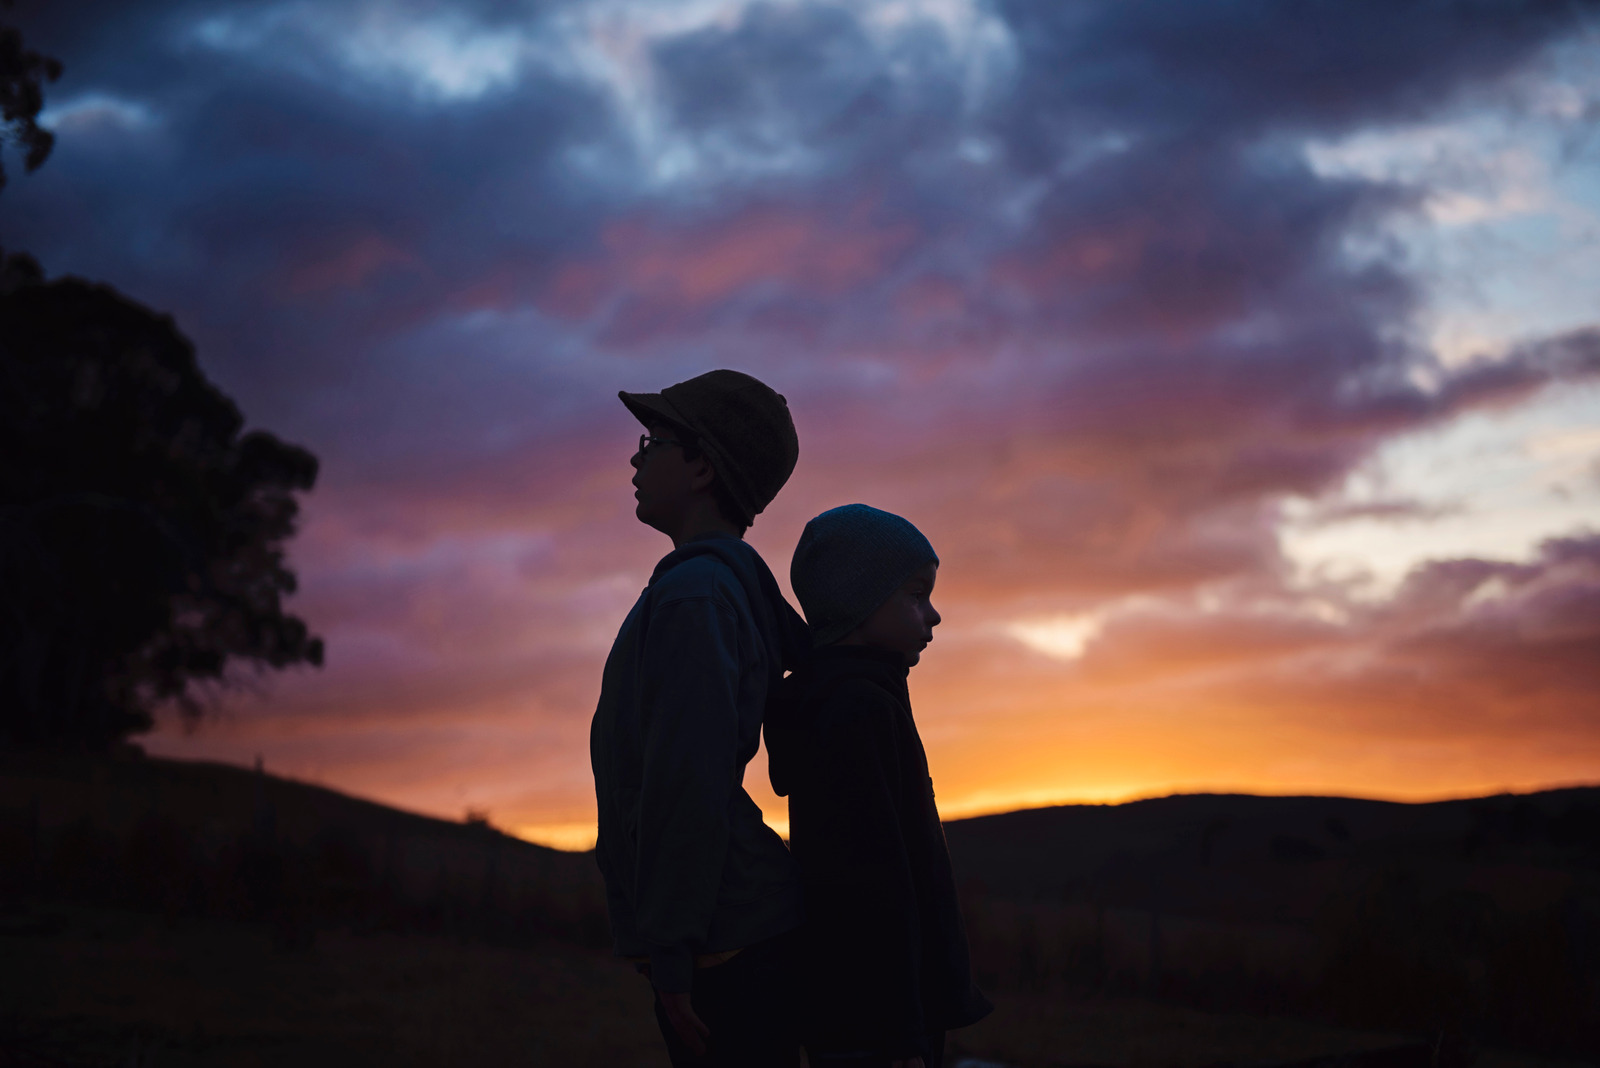 Images by Kat and Steve Smith - KS Photography